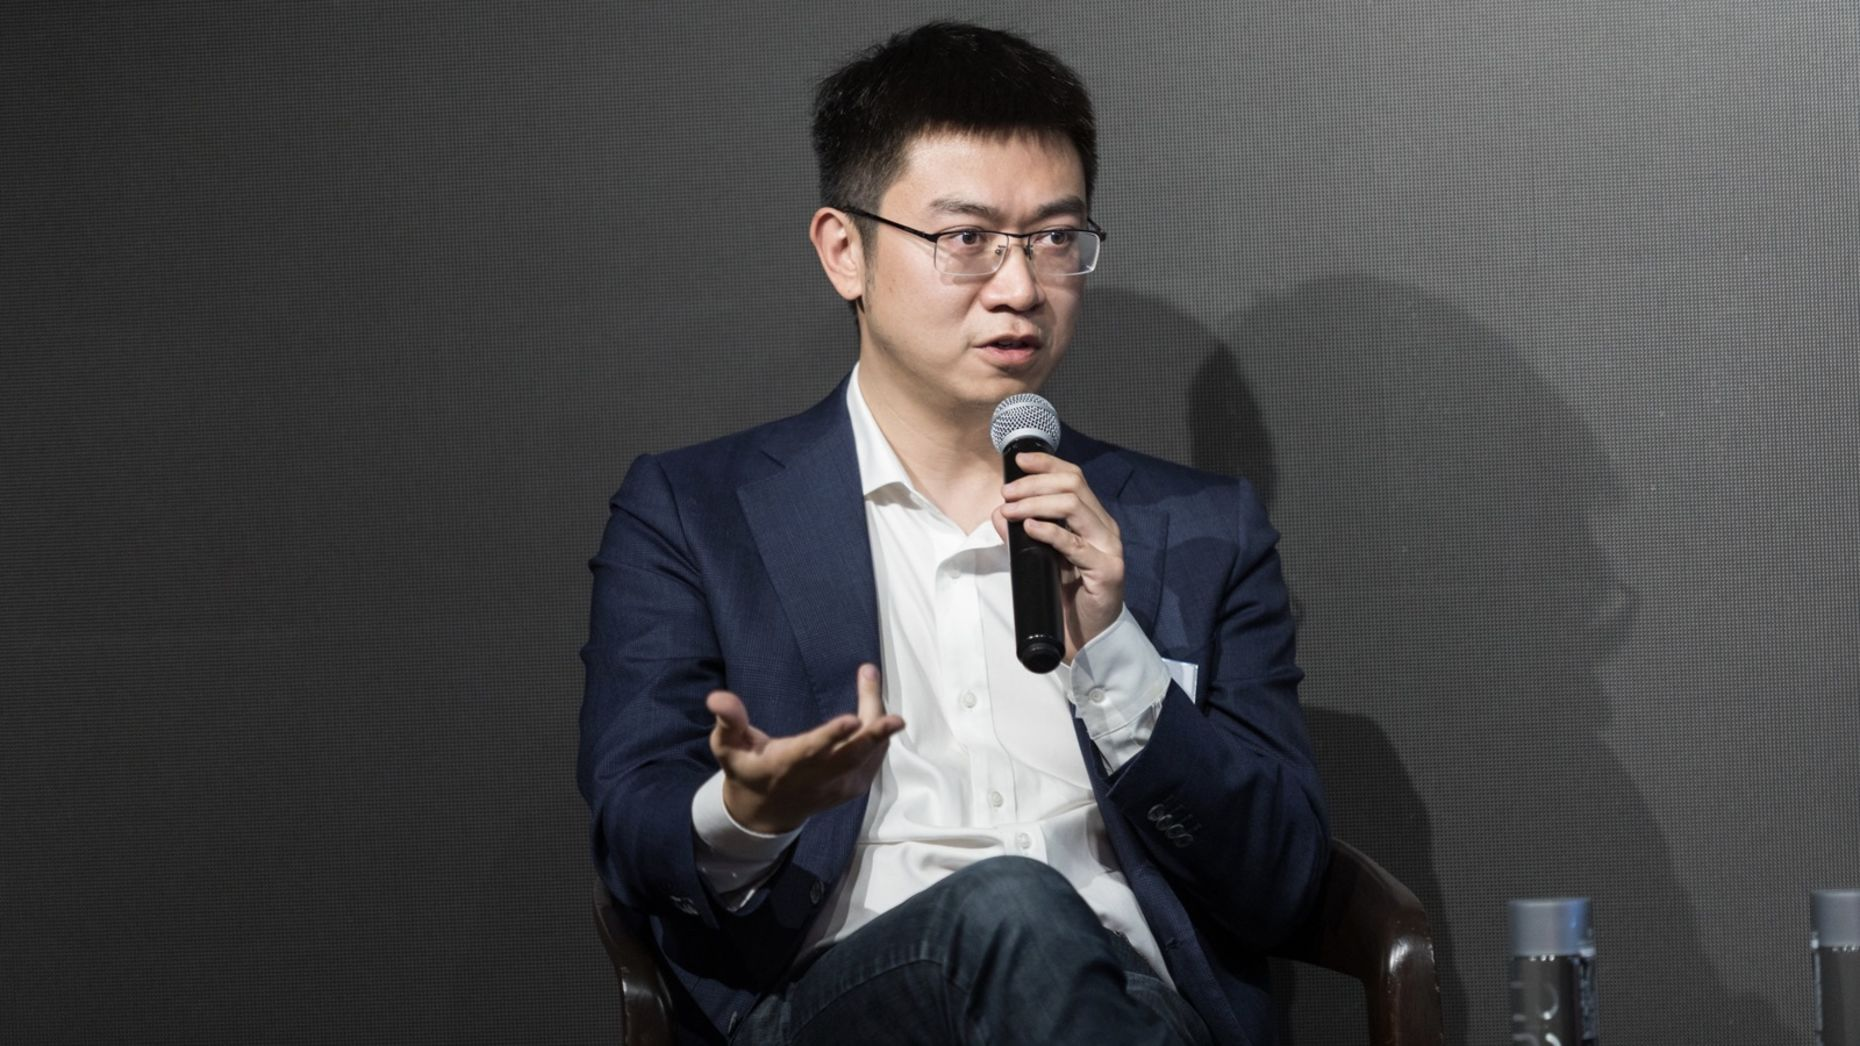 Meng Xing, chief operating officer of Didi's autonomous driving unit. Photo by SunYiye@UKON